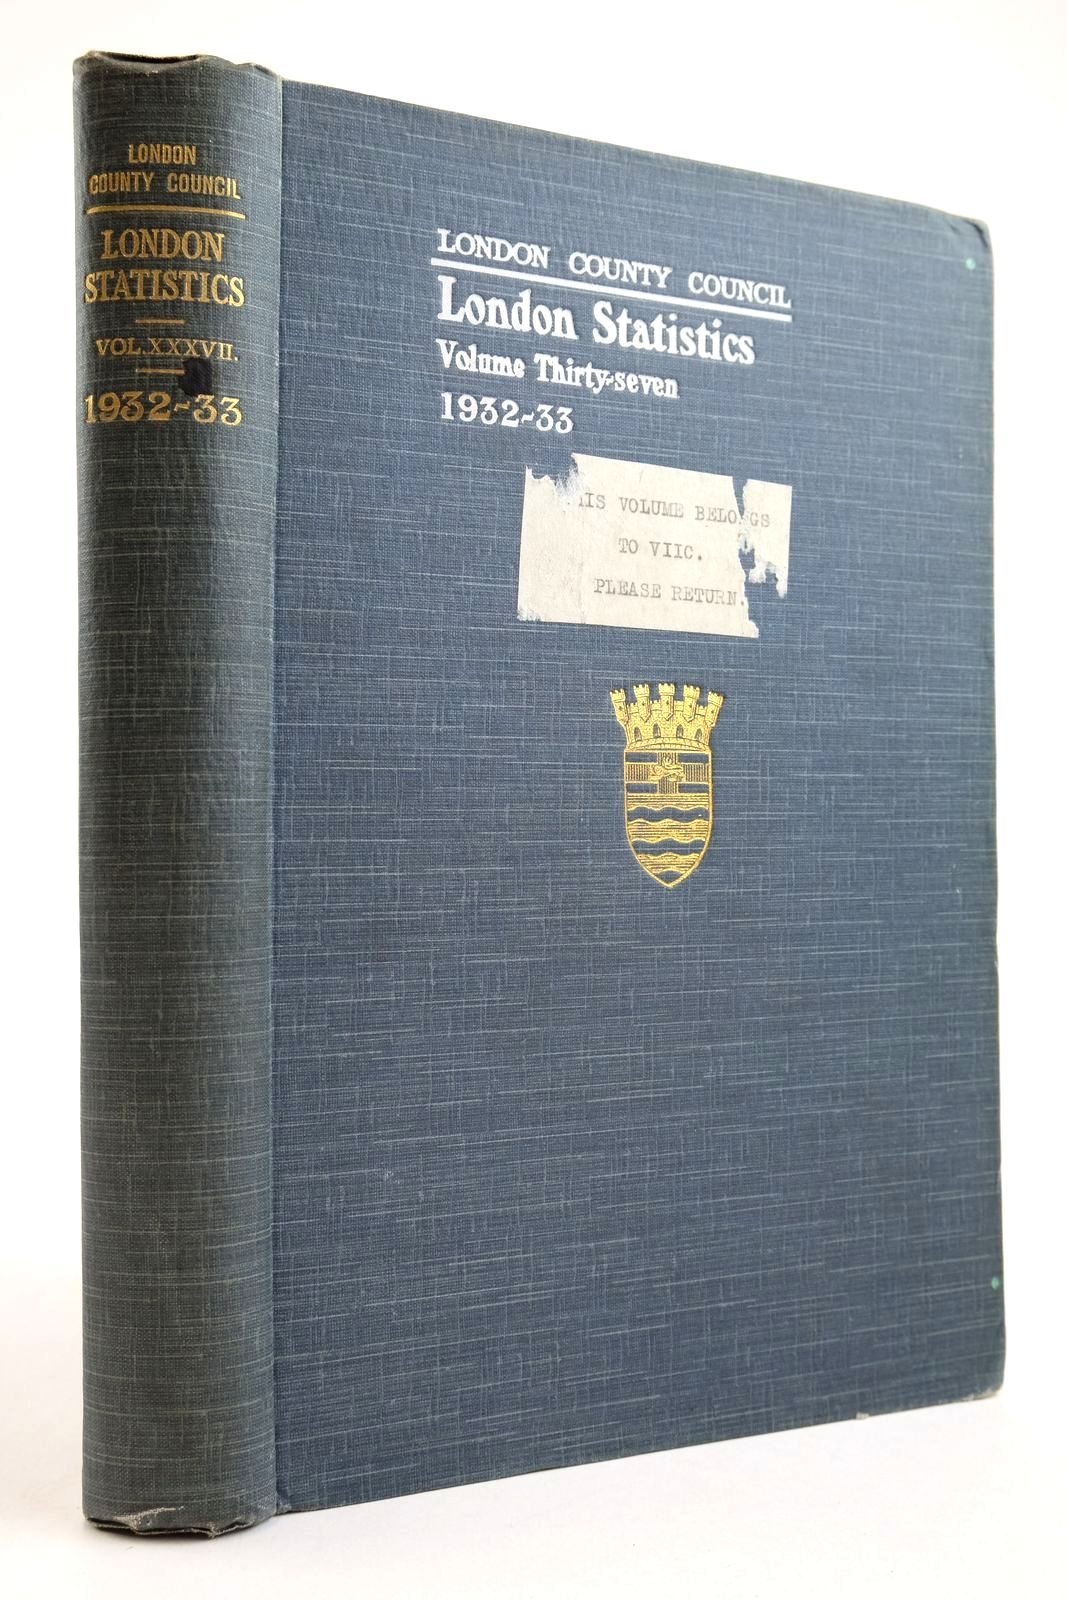 Photo of LONDON STATISTICS 1932-33 VOL. XXXVII- Stock Number: 2134150